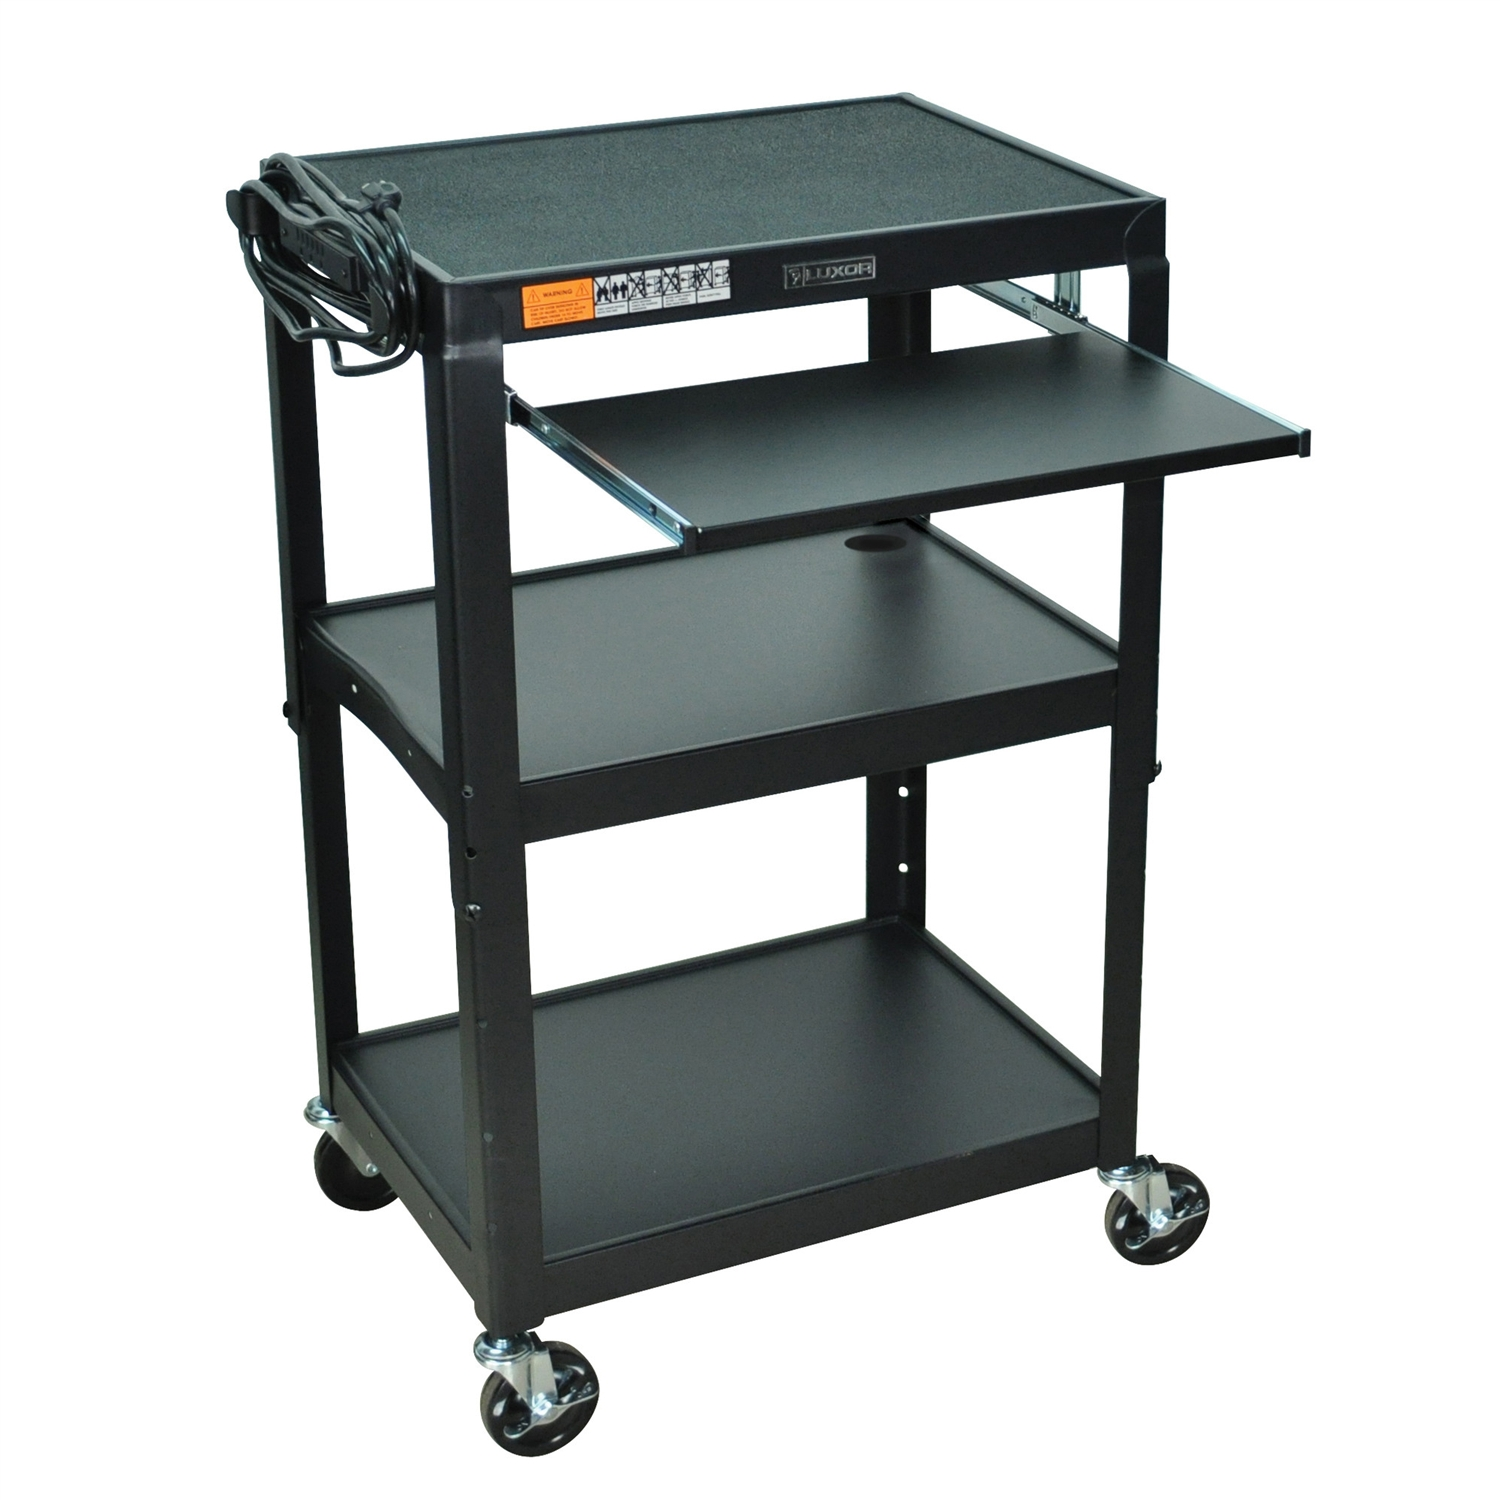 "This Mobile Stand Up Computer Desk Workstation Cart in Black Steel is height adjustable in 2"" increments. Includes hand holes for easy mobility. Application Options: Home Office, Office; Product Category: AV Carts; Style Options: AV Cart, Projector Cart; Type Options: Computer Desk, Workstations."